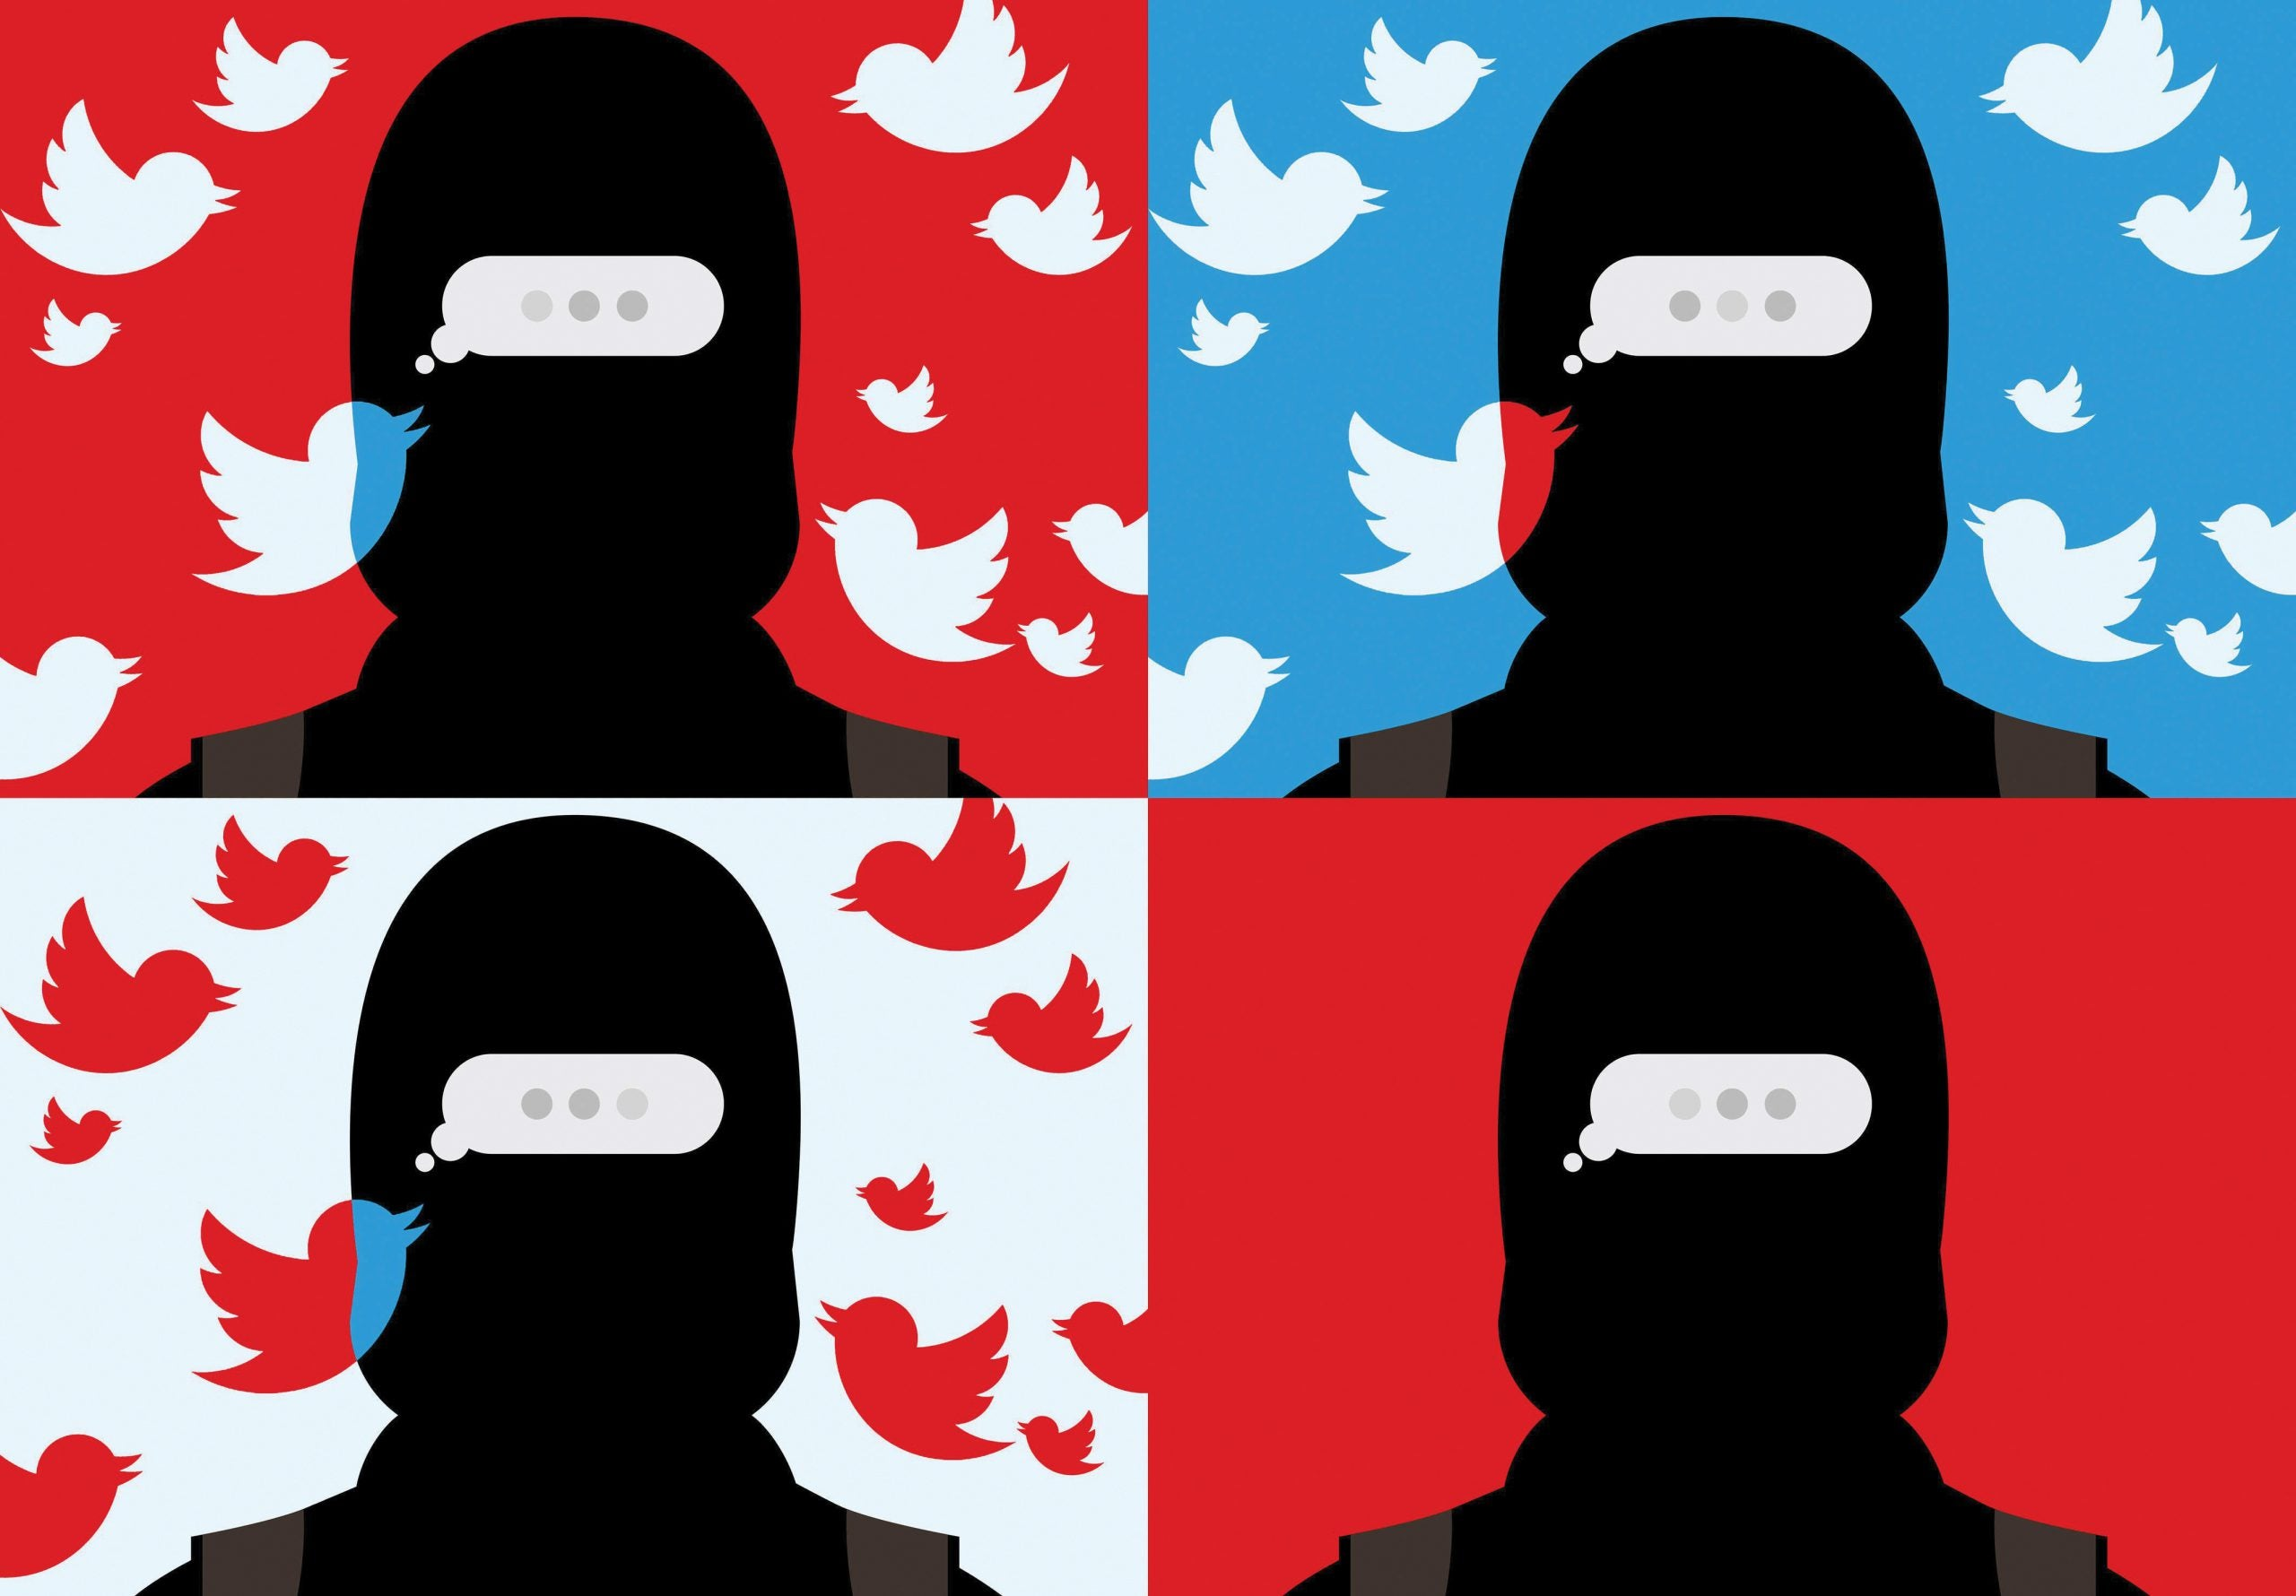 Rise of the keyboard fascists: how the internet enables radicalisation